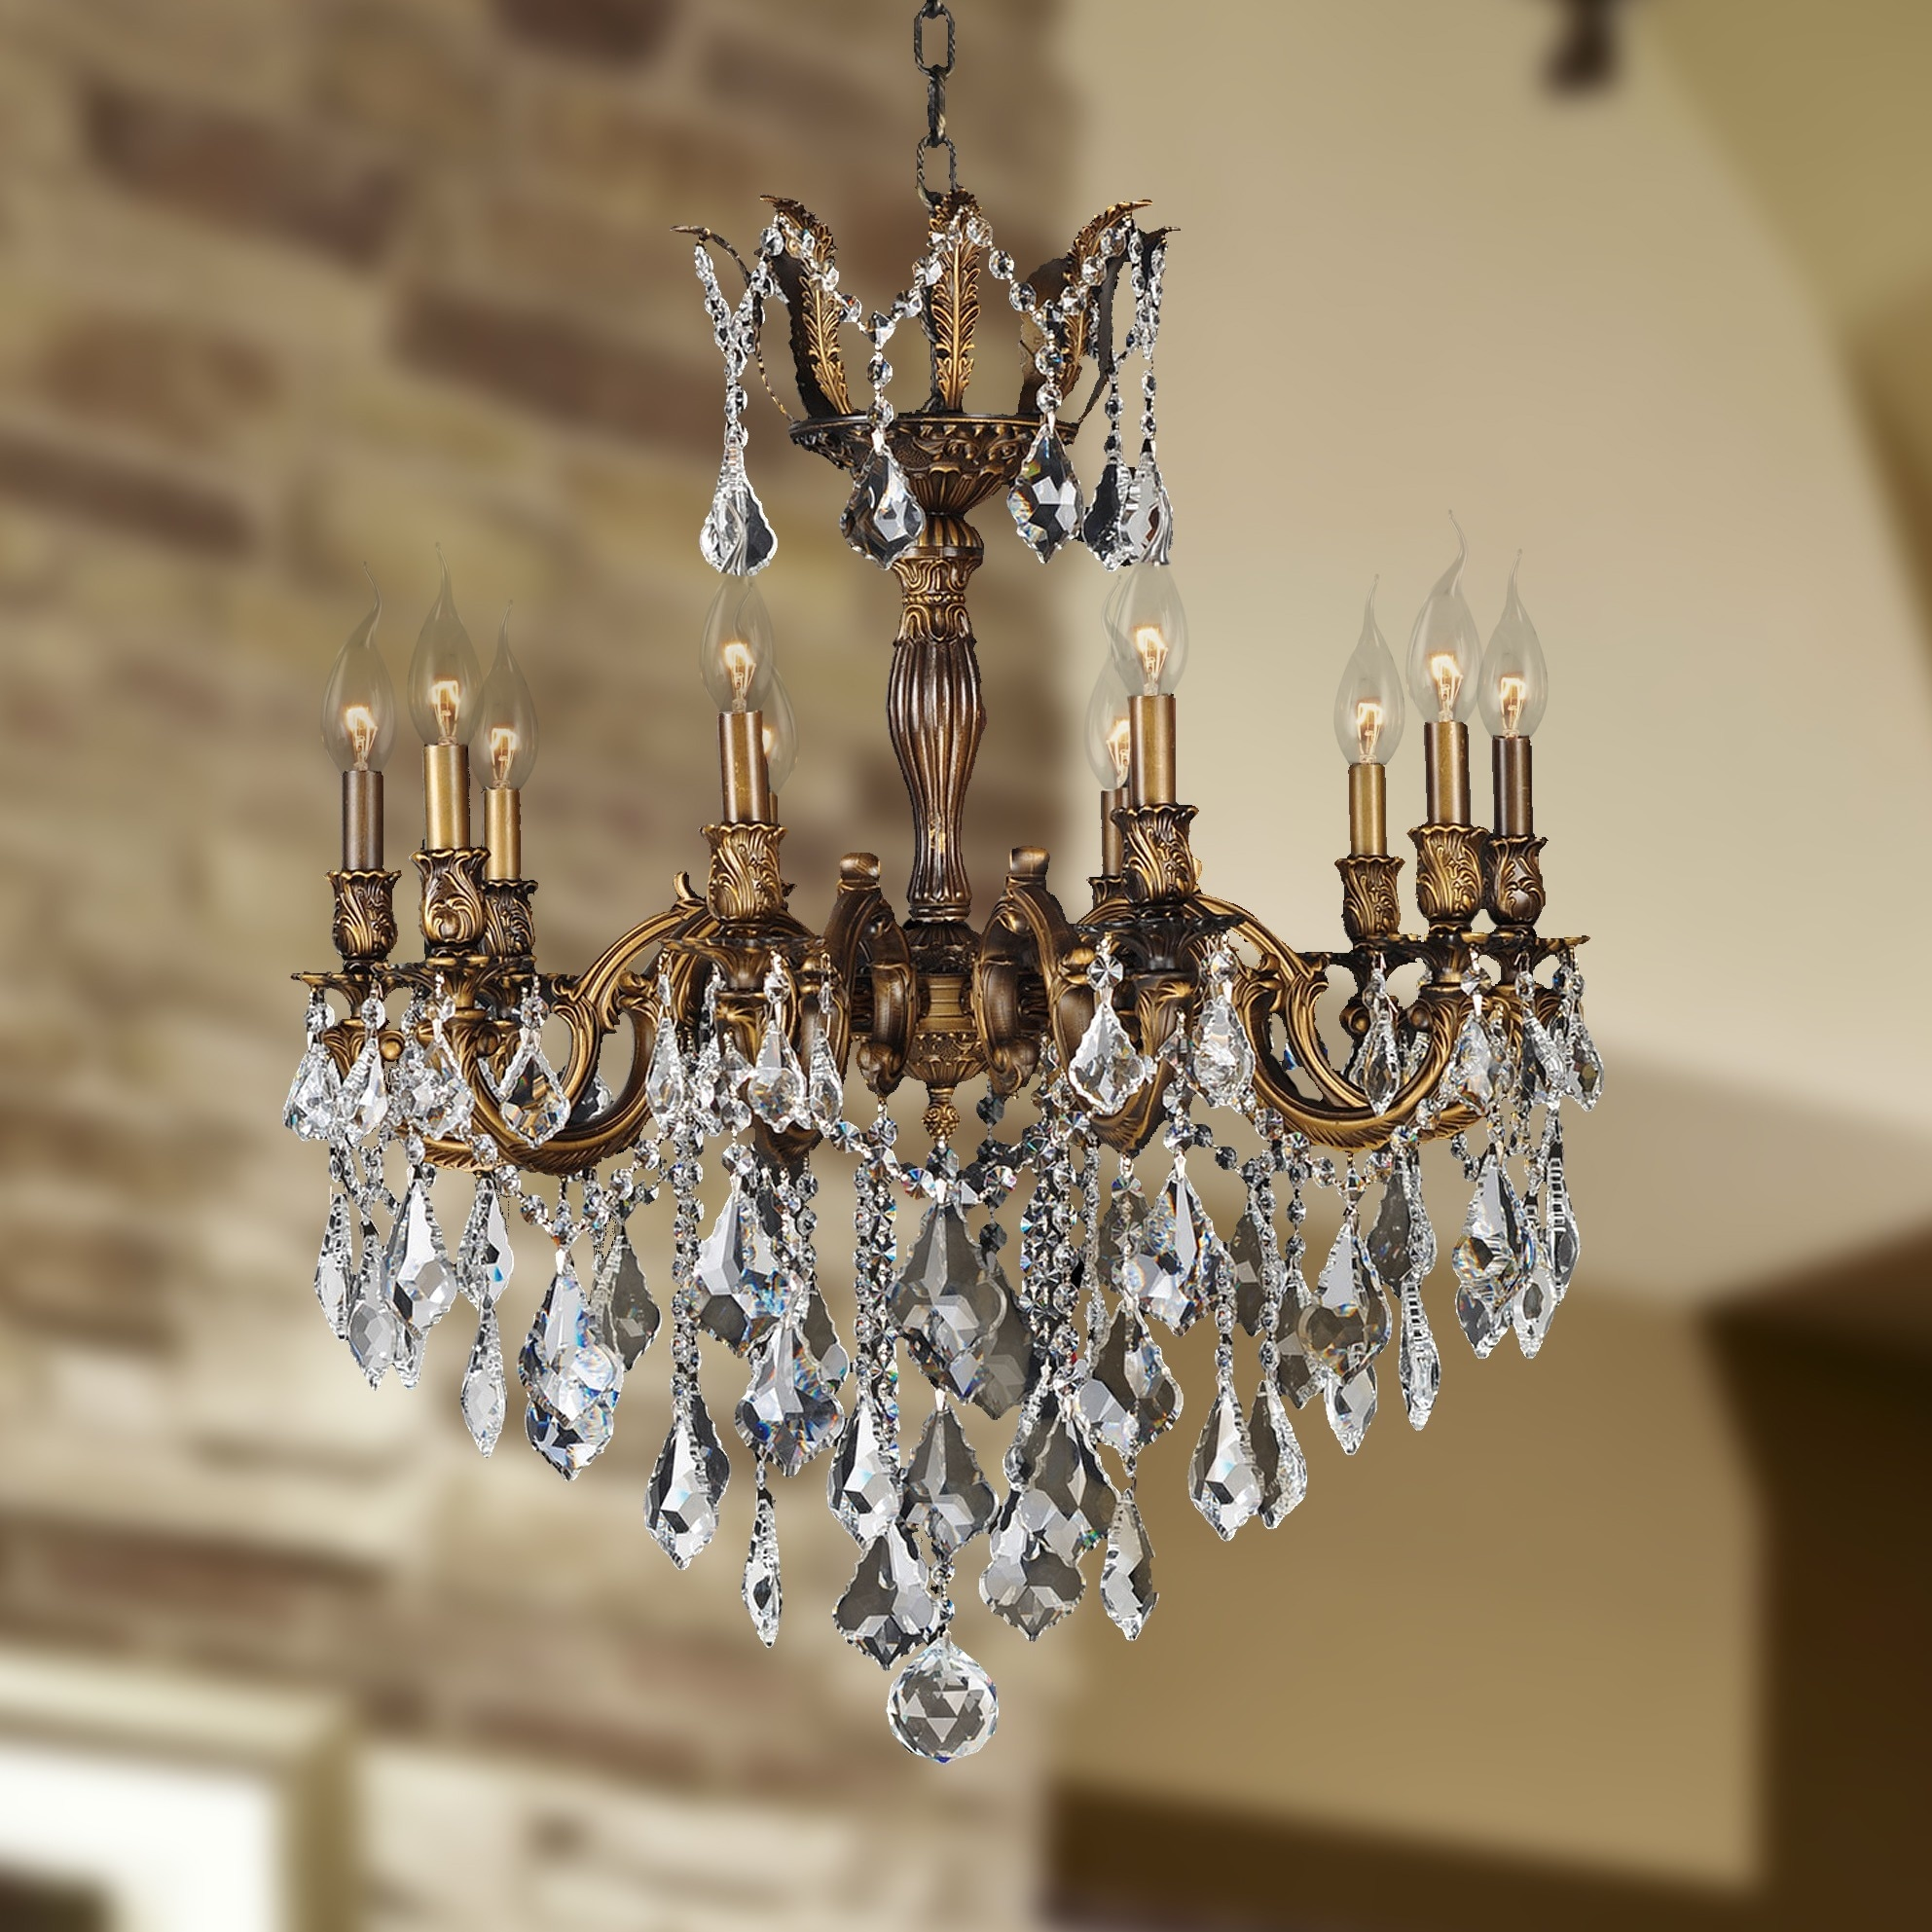 Versailles collection 10 light antique bronze finish and clear versailles collection 10 light antique bronze finish and clear crystal chandelier free shipping today overstock 17447958 arubaitofo Image collections